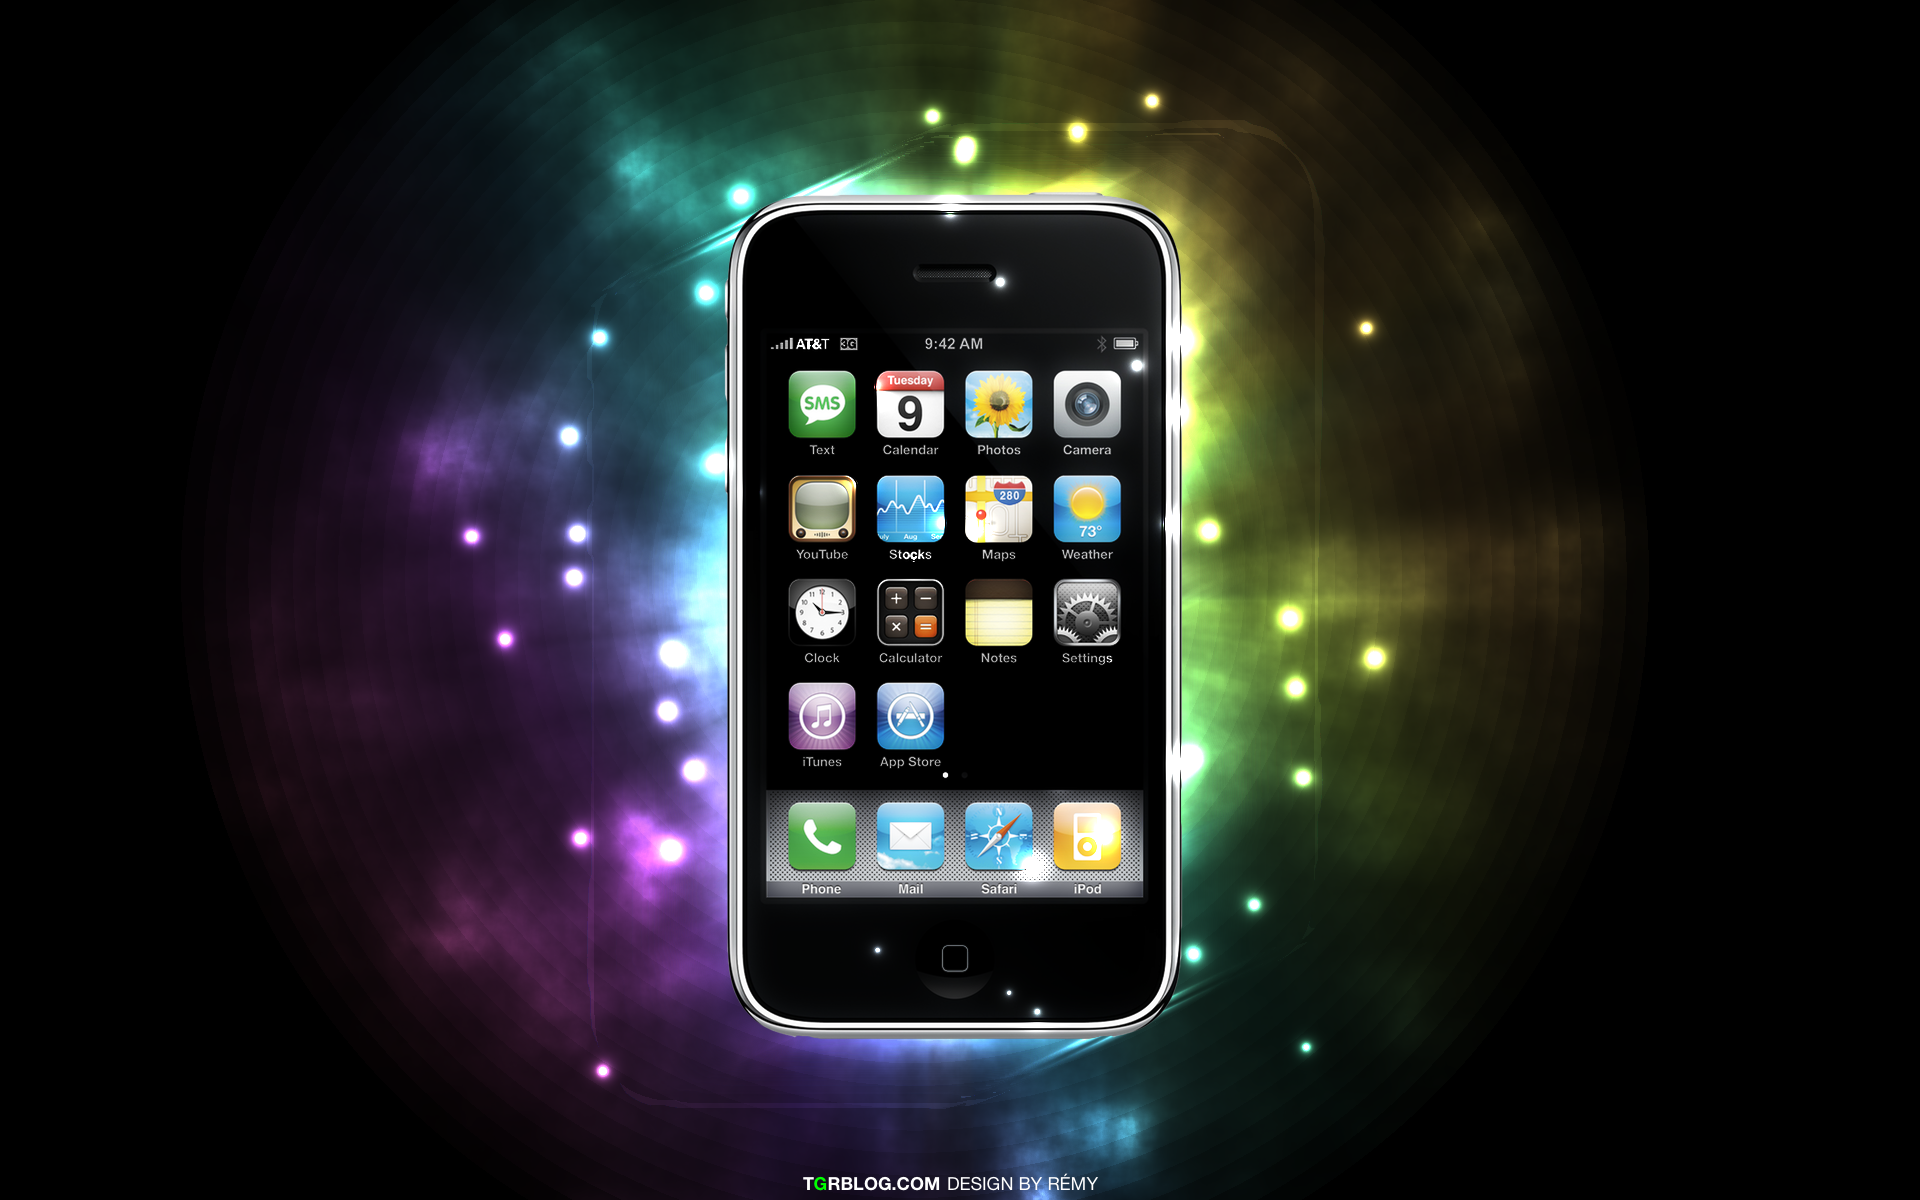 Iphone Hd Wallpapers: 12 HD IPhone Wallpapers For Your Desktop